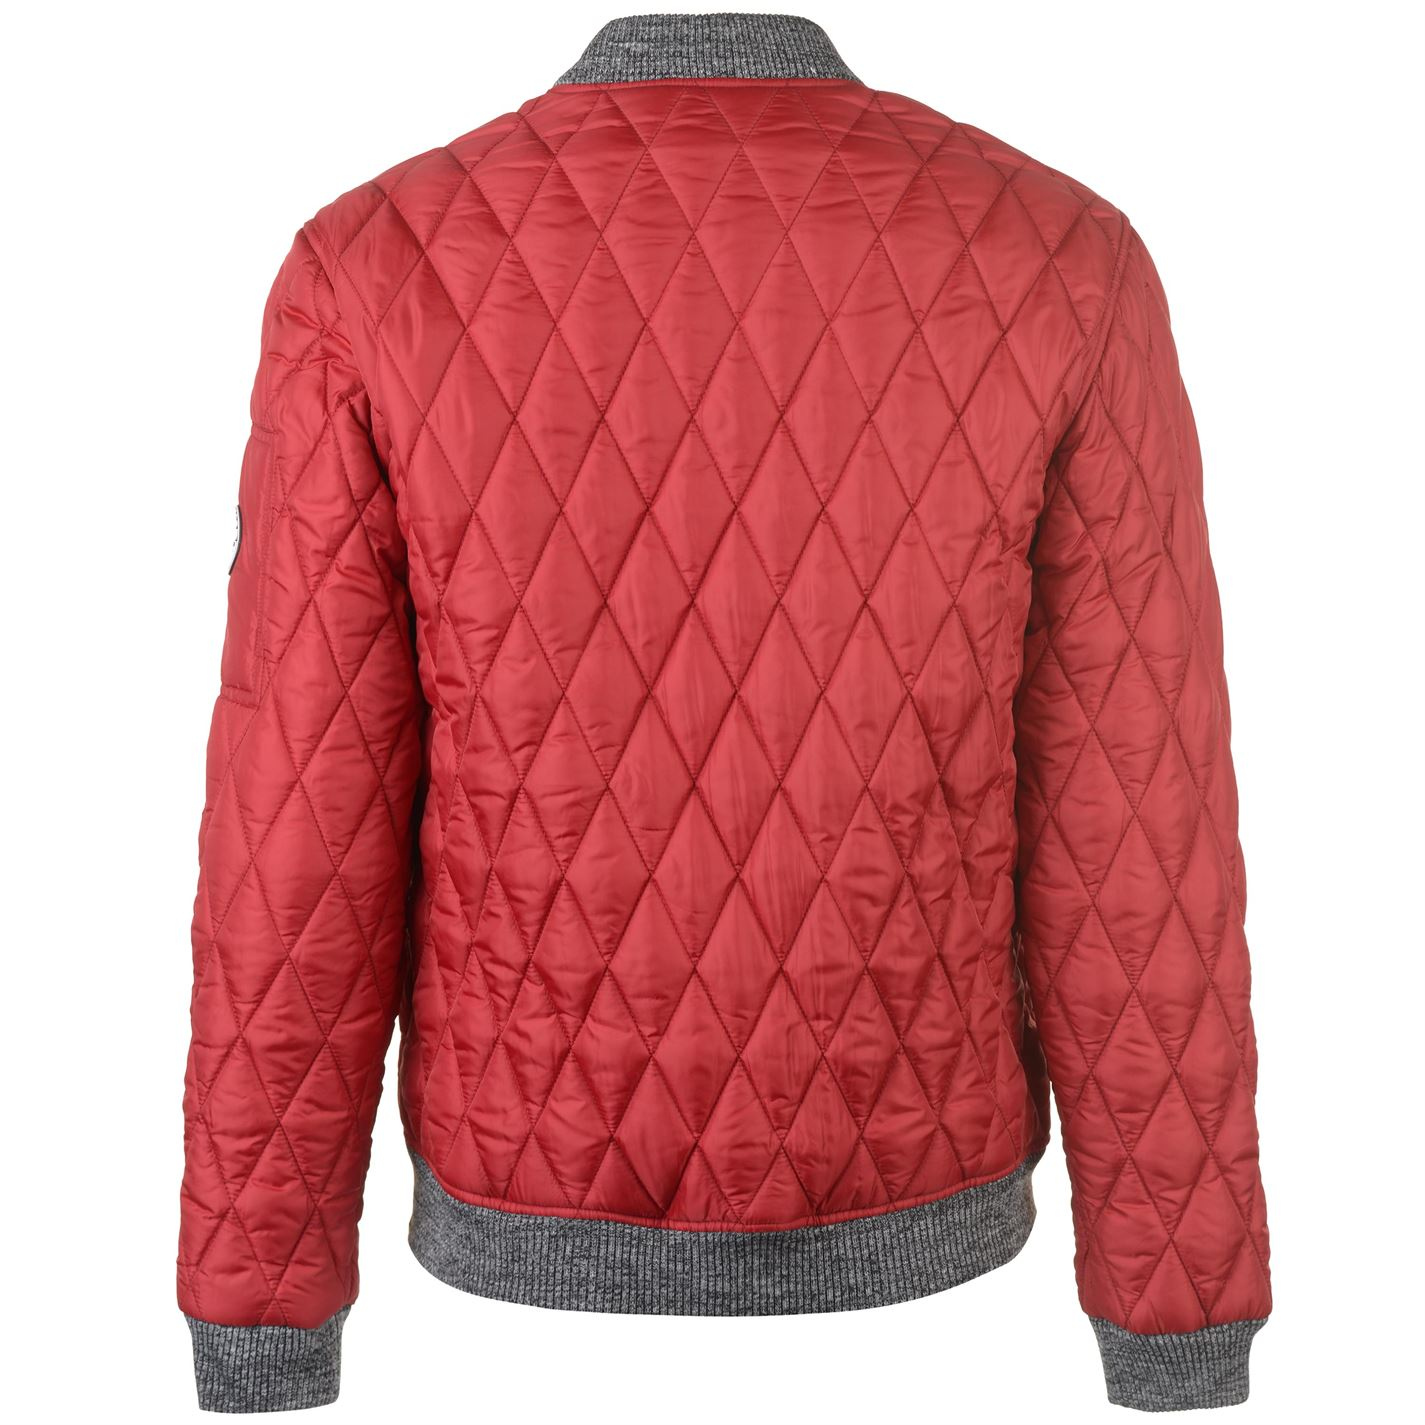 No-Fear-Quilted-Bomber-Jacket-Mens-Gents-Coat-Top-Full-Length-Sleeve-Zip-Zipped thumbnail 10